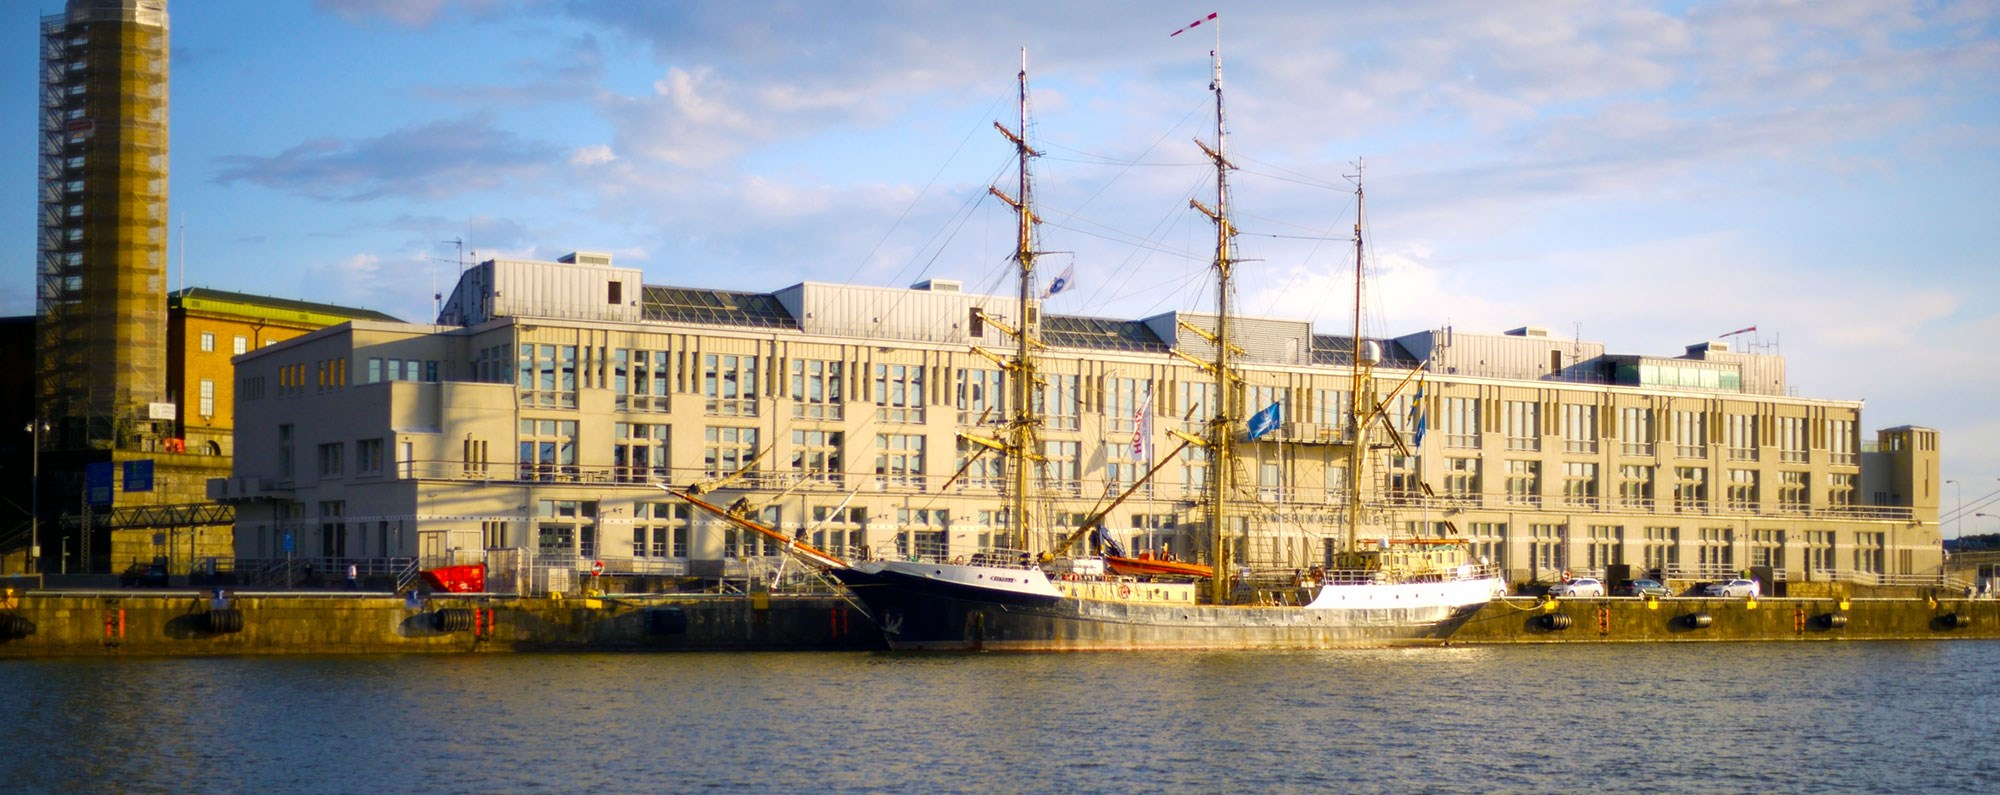 Yacht charter in Gothenburg